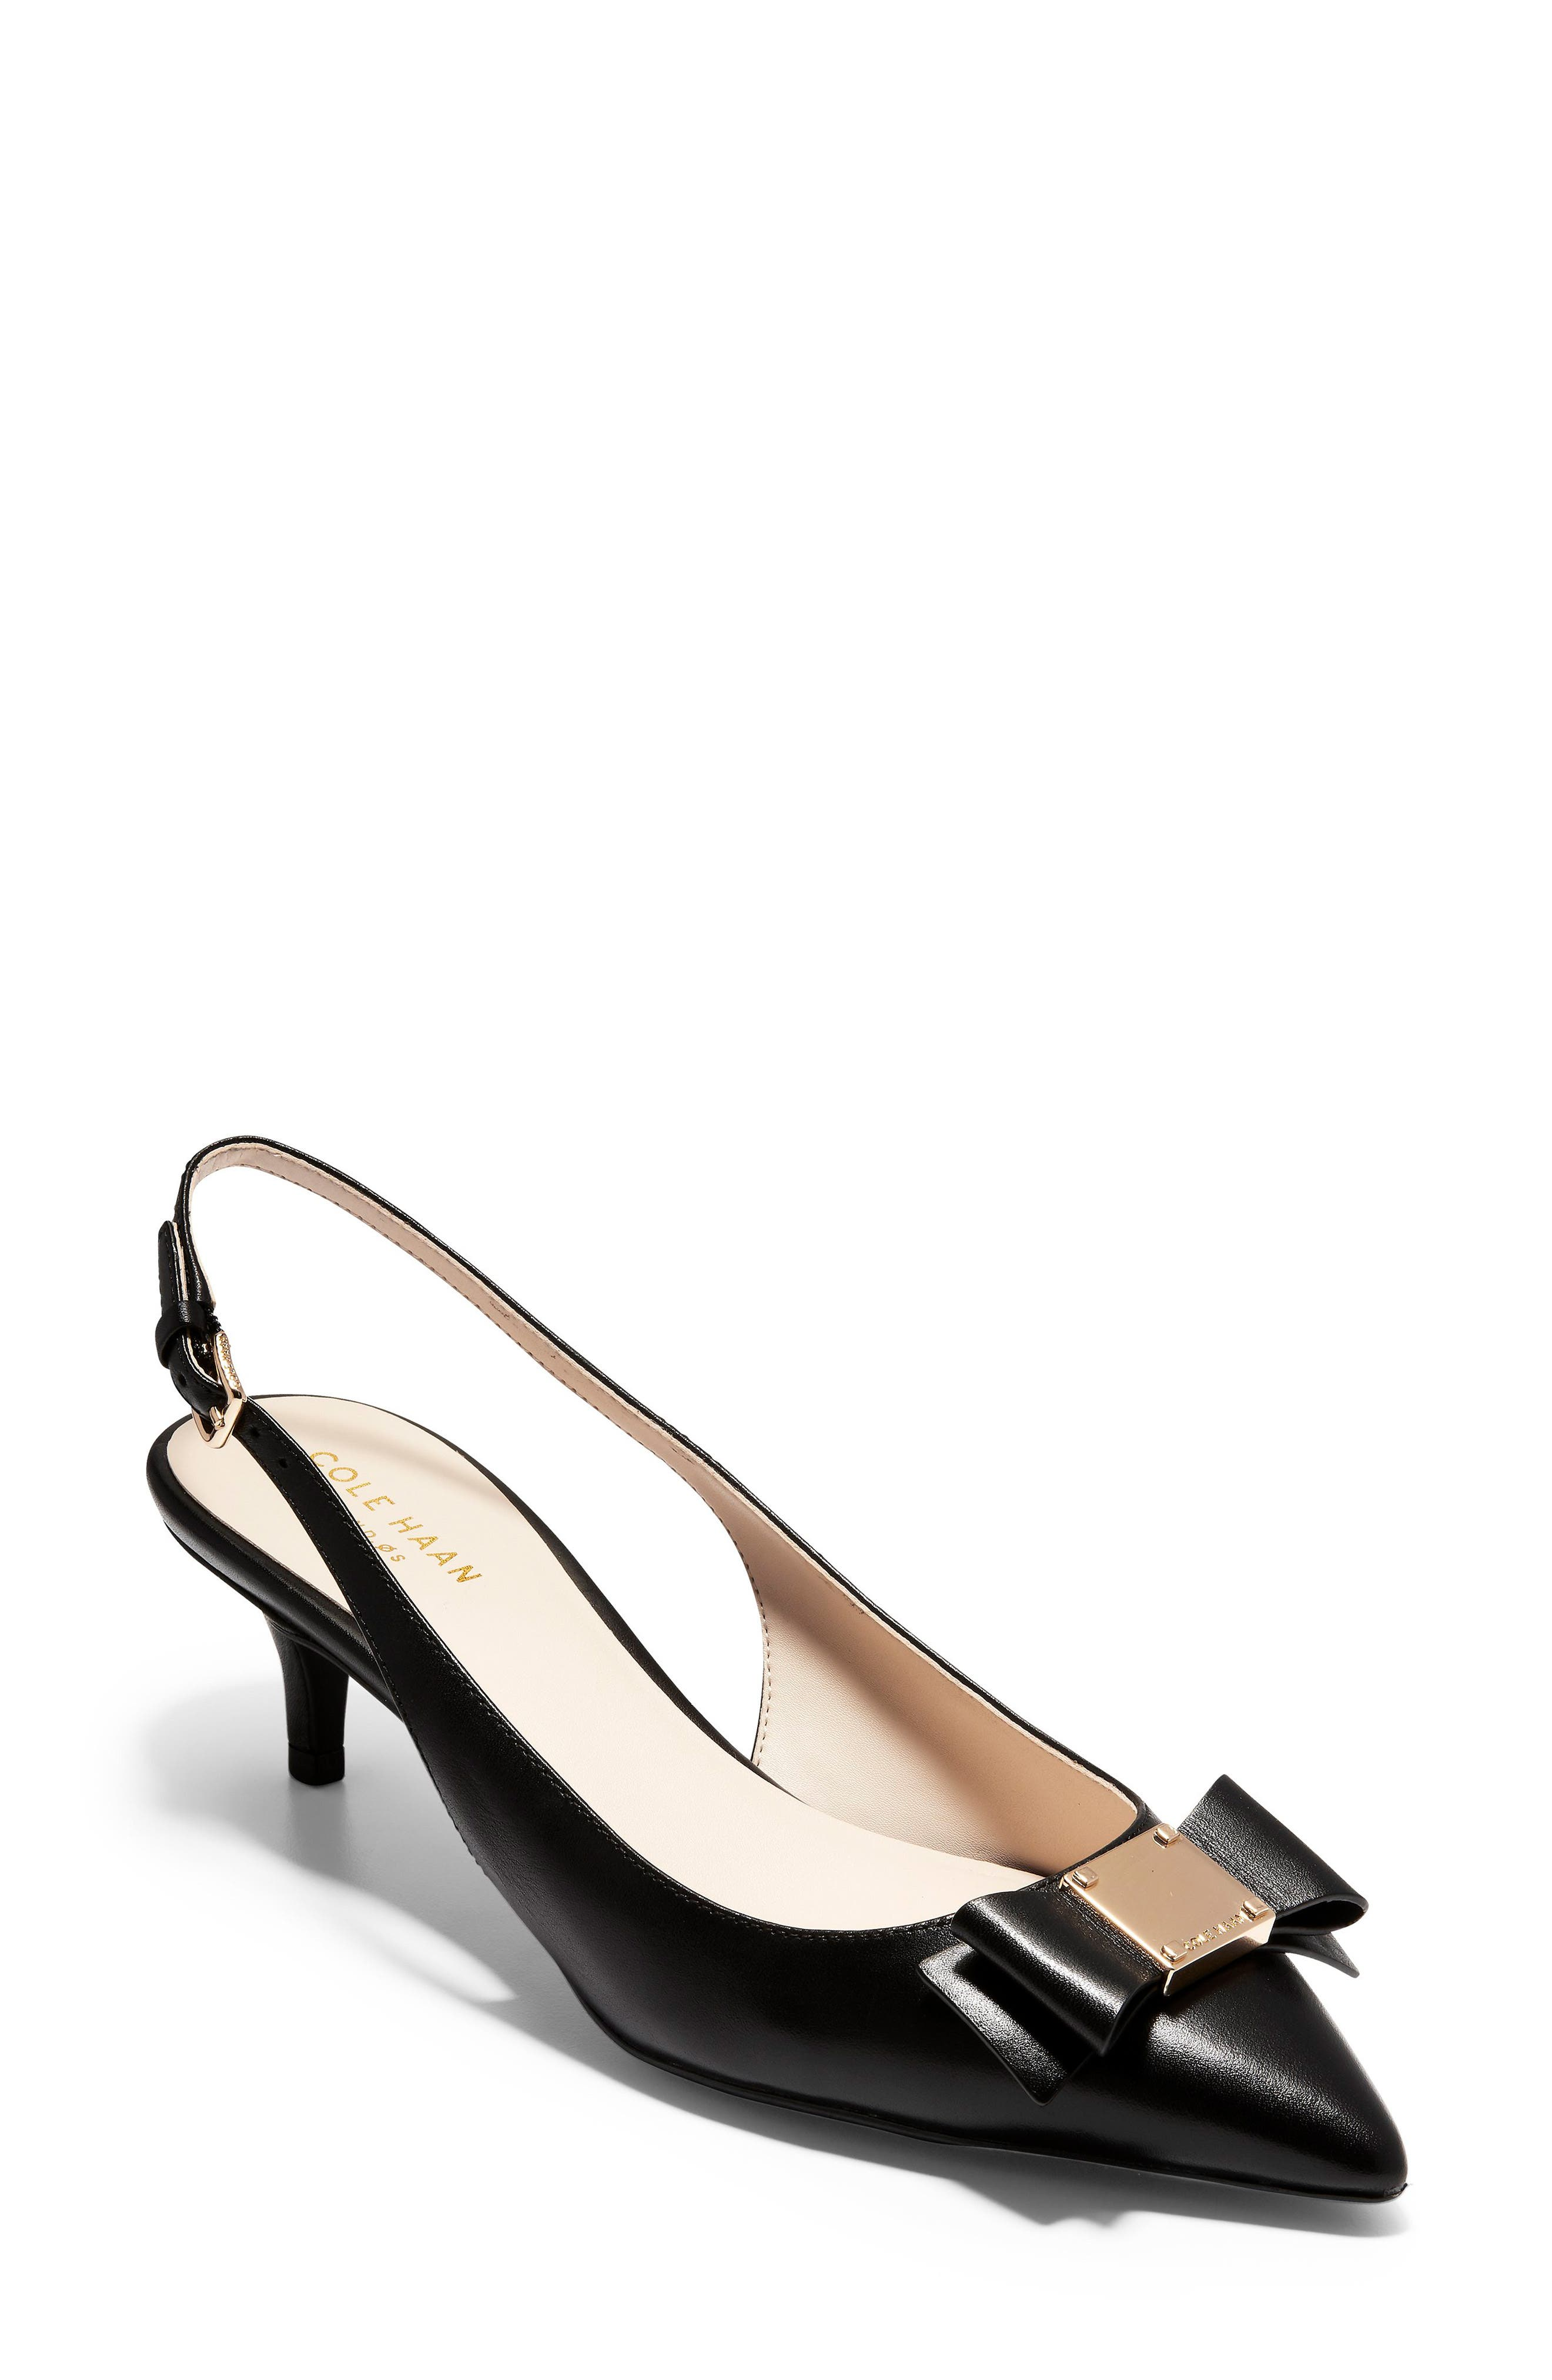 COLE HAAN,                             Tali Bow Slingback Pump,                             Main thumbnail 1, color,                             BLACK LEATHER